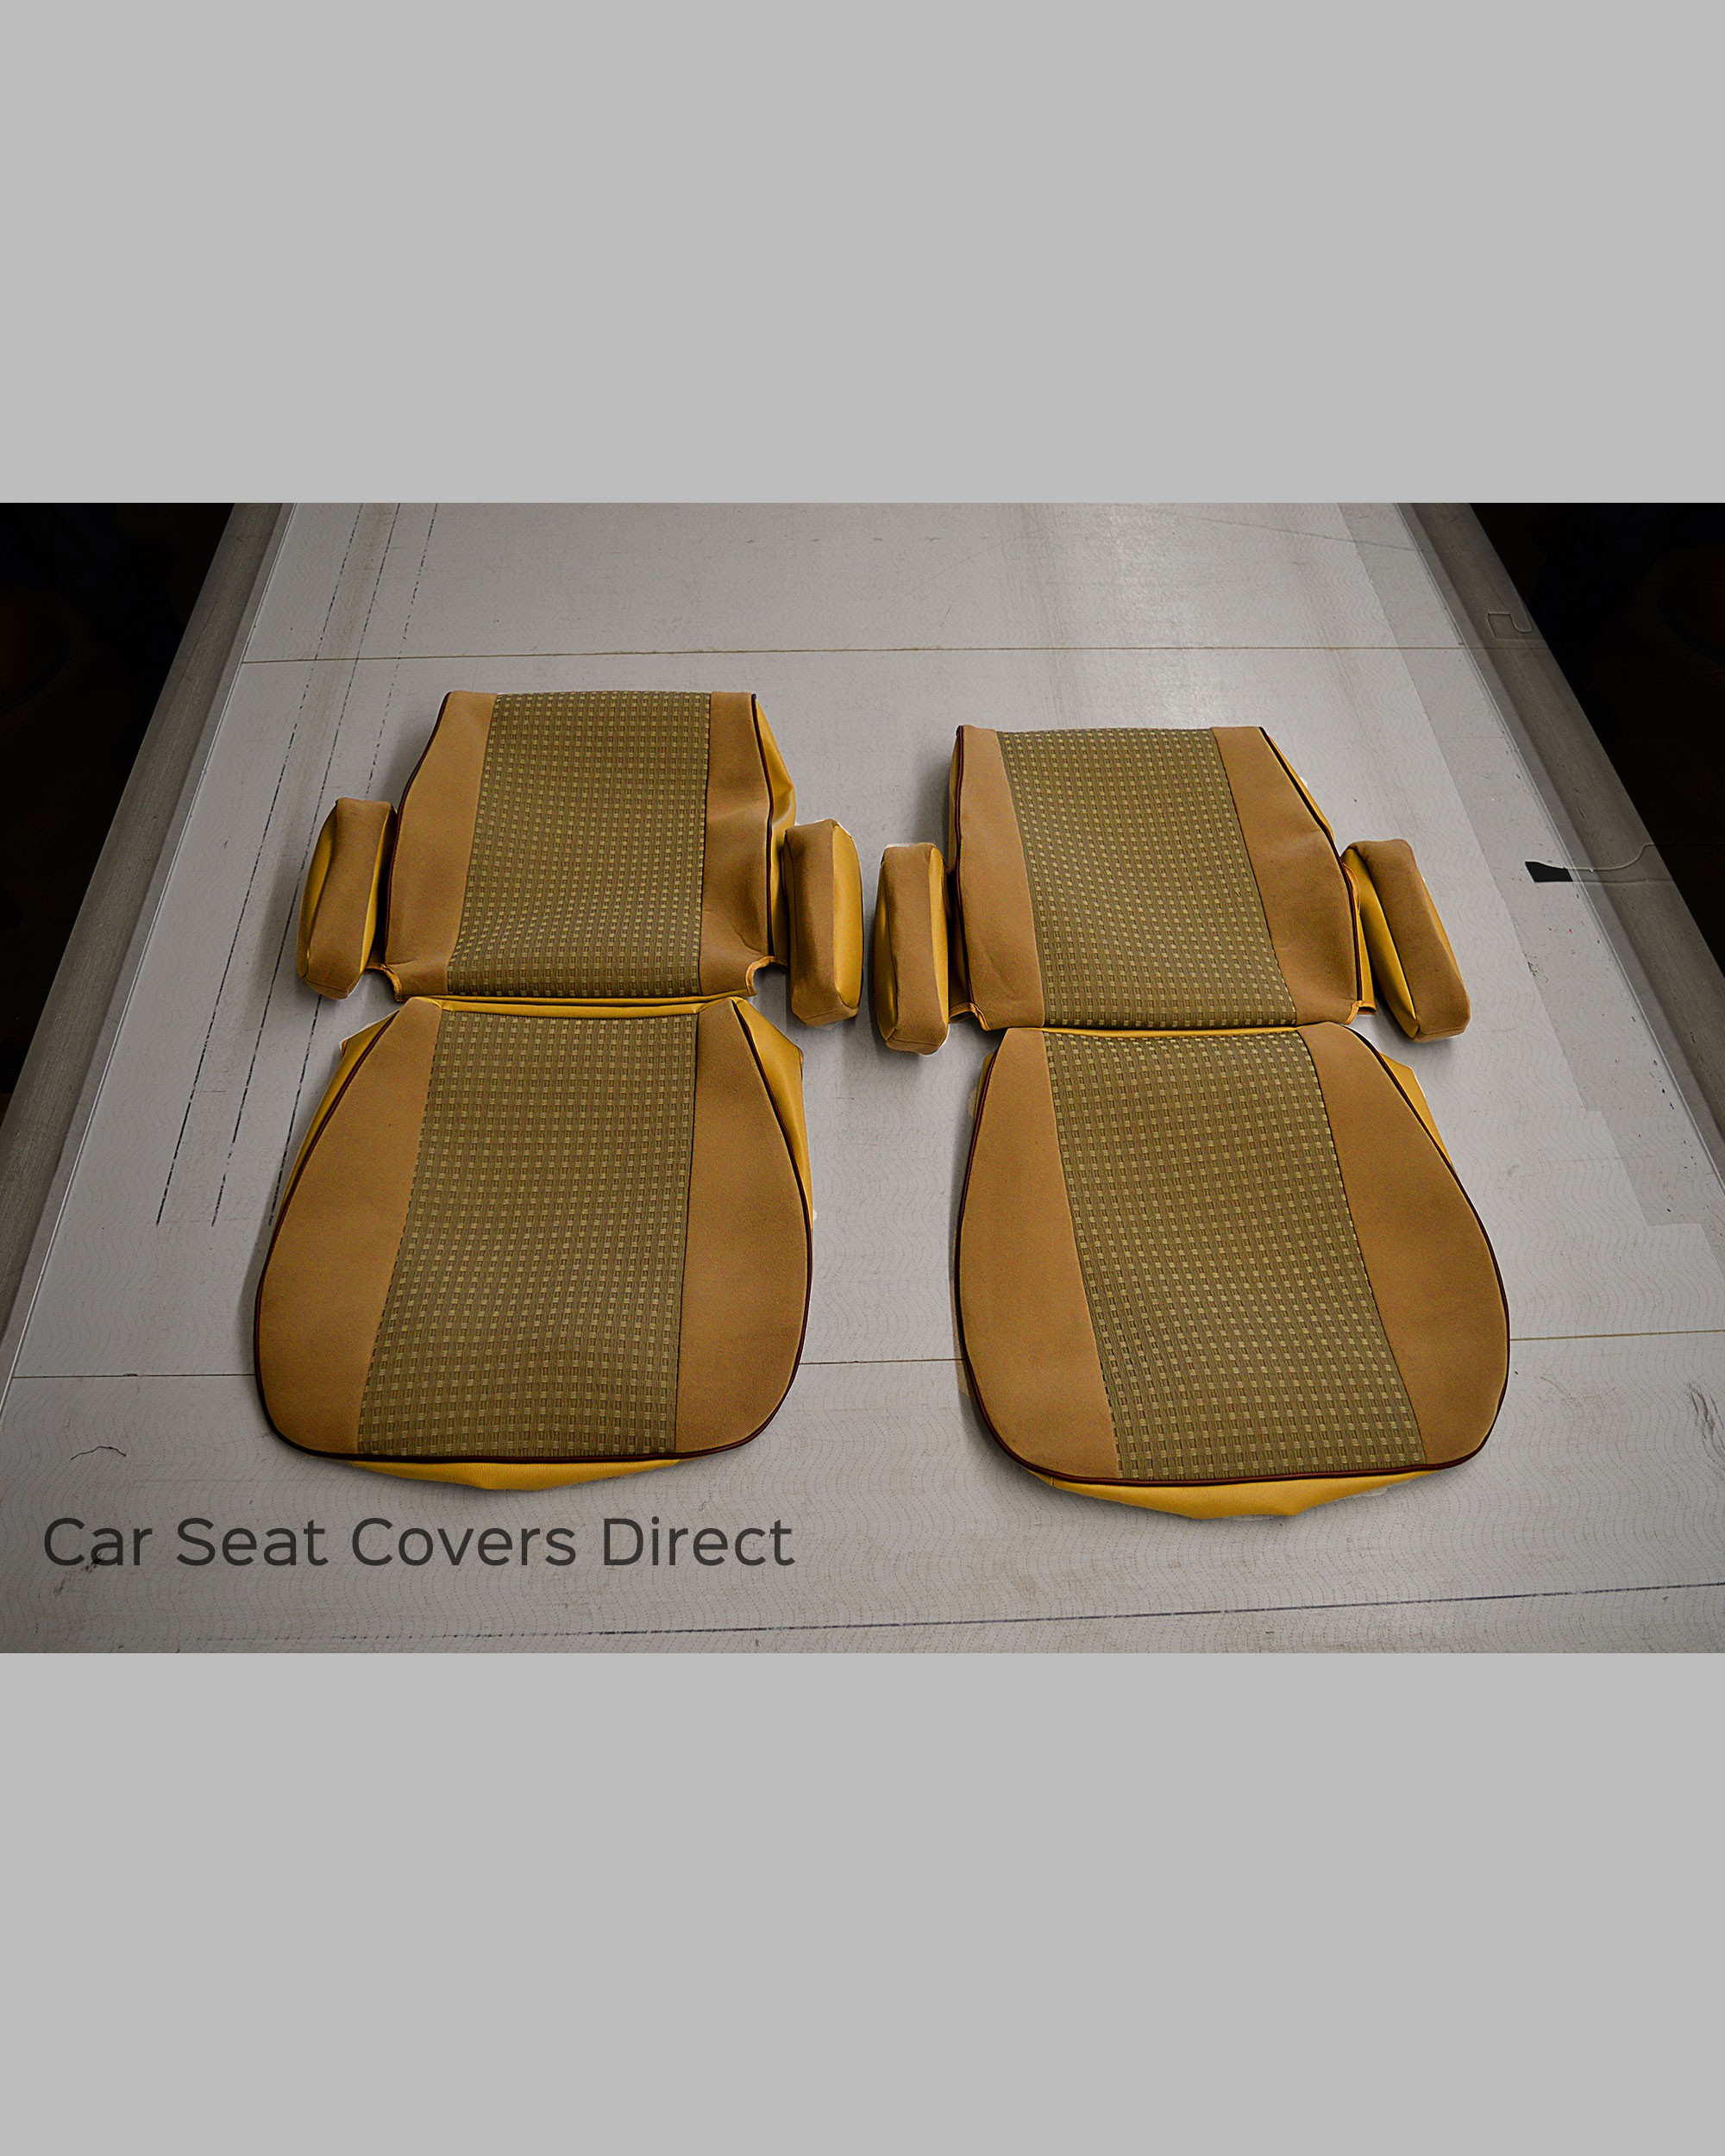 vw t25 t3 tailored fabric seat covers car seat covers direct tailored to your choice. Black Bedroom Furniture Sets. Home Design Ideas